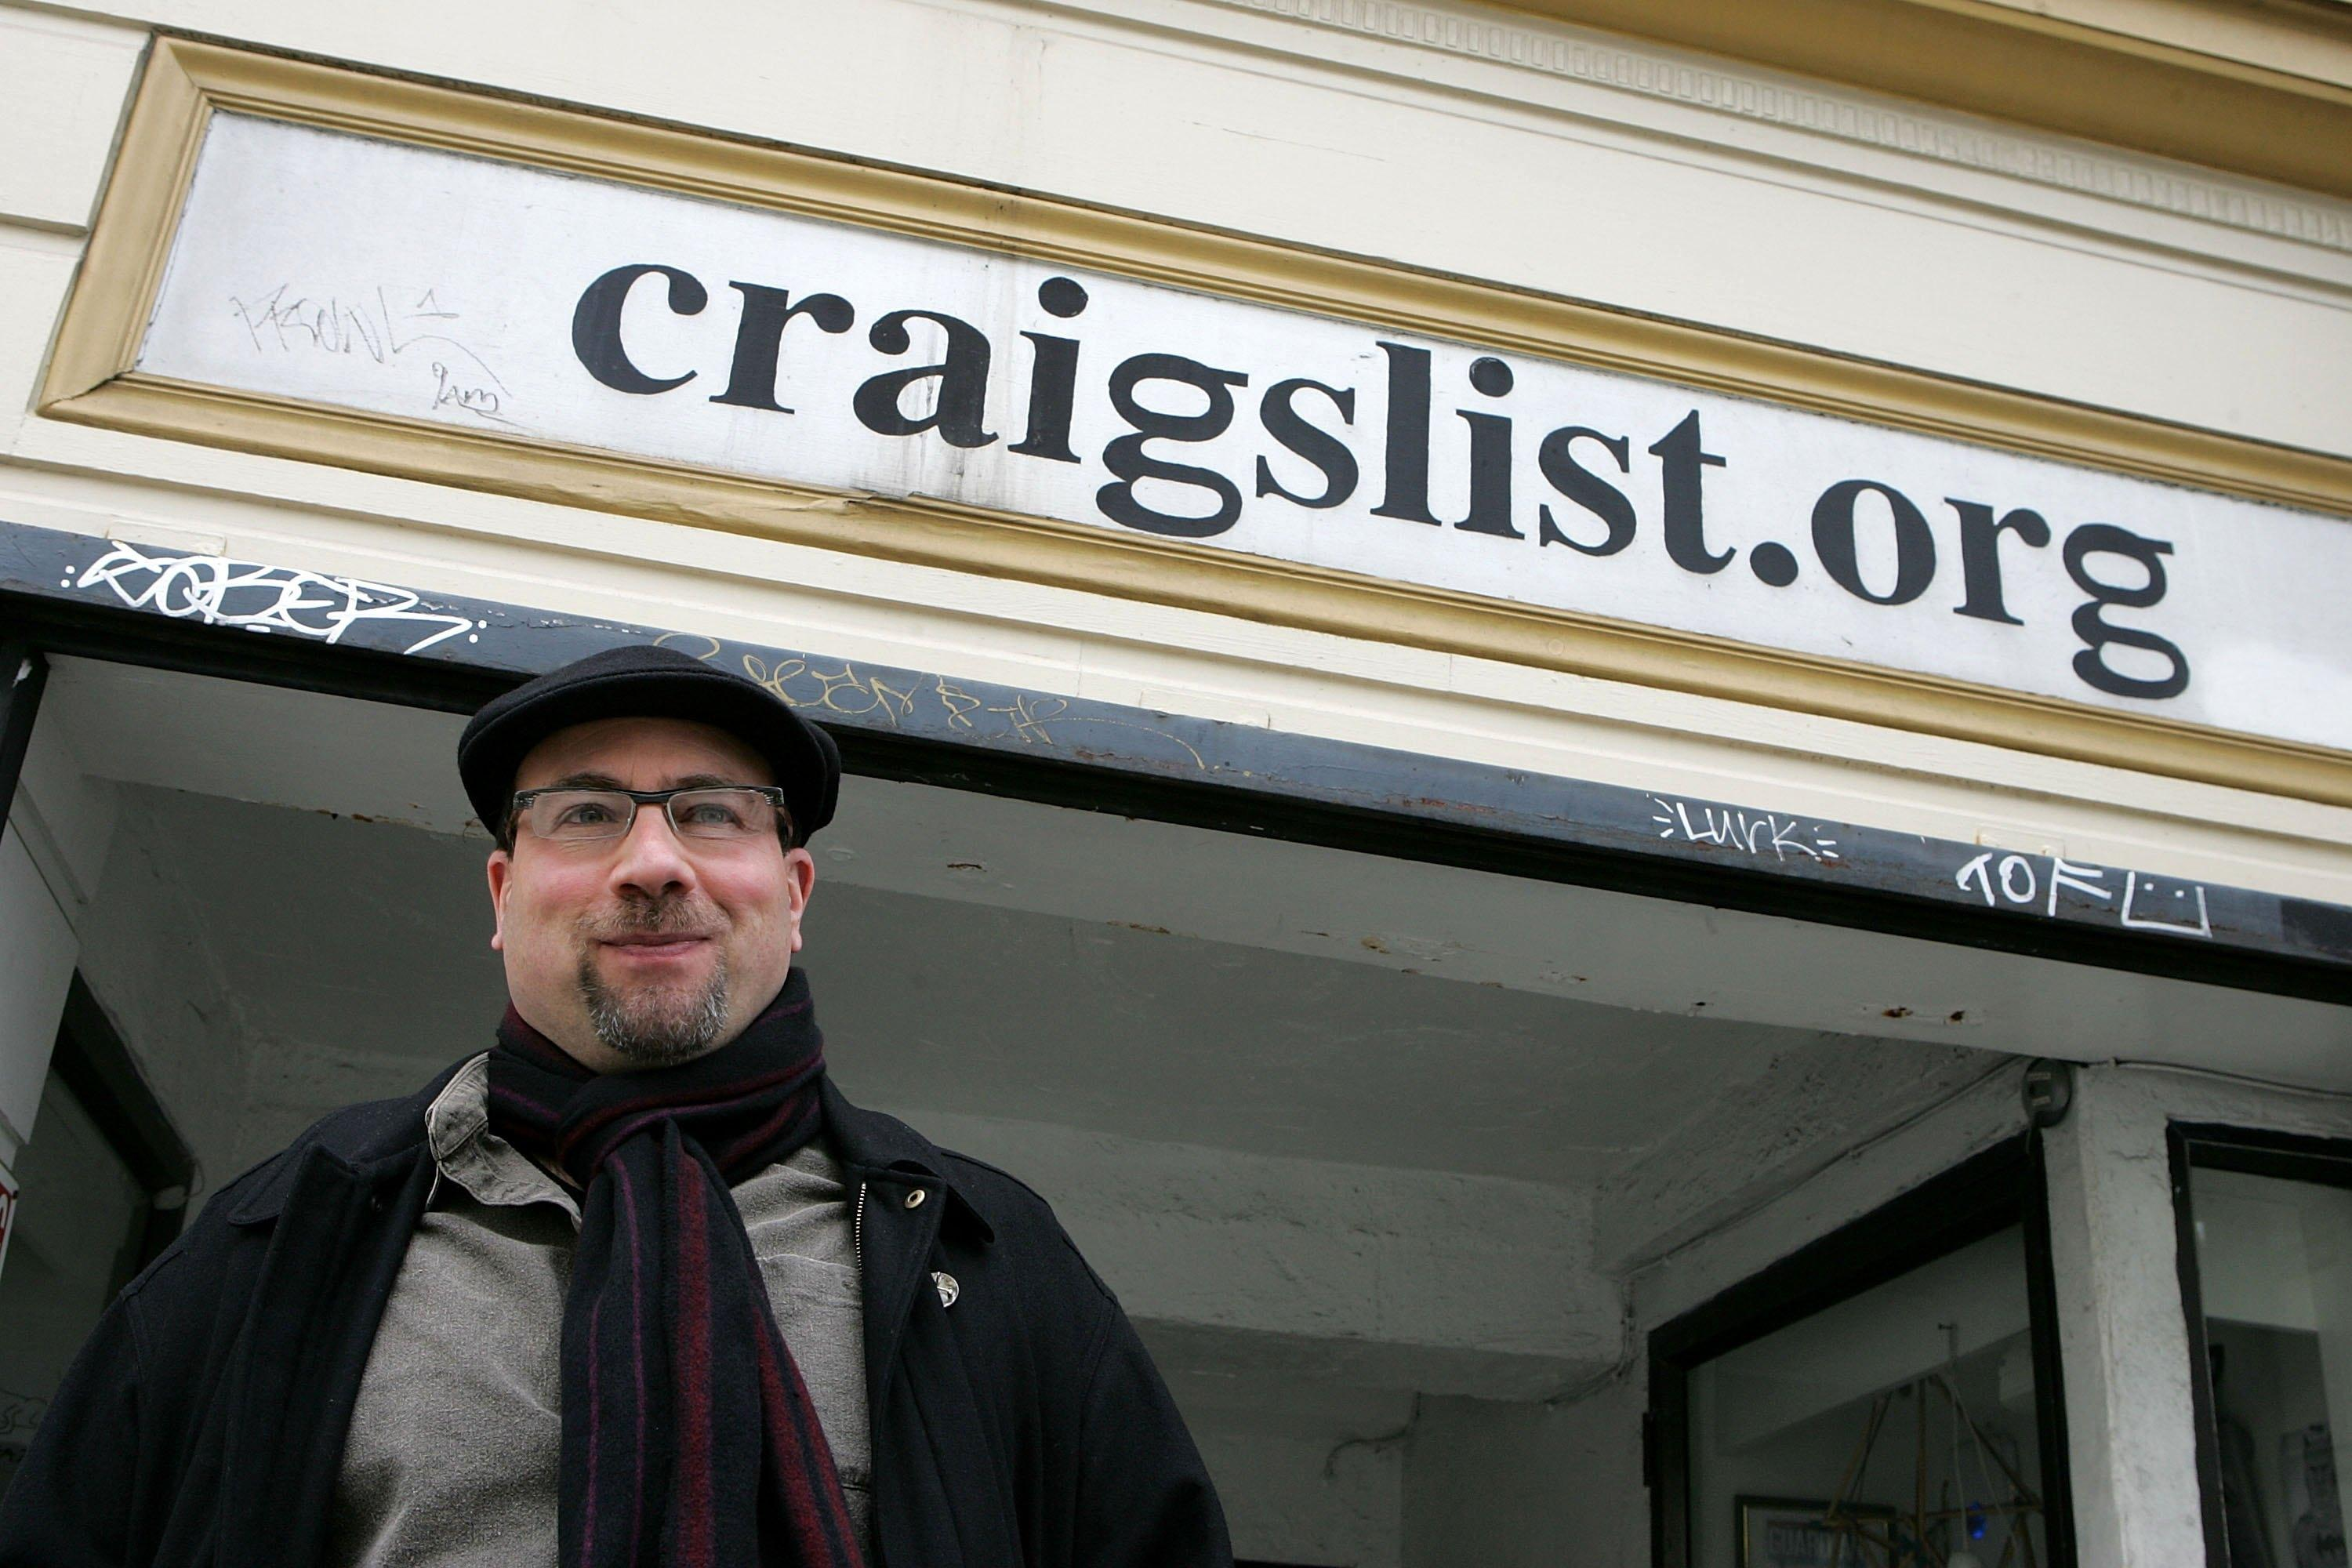 Craigslist's Legendary Personals Section Shuts Down